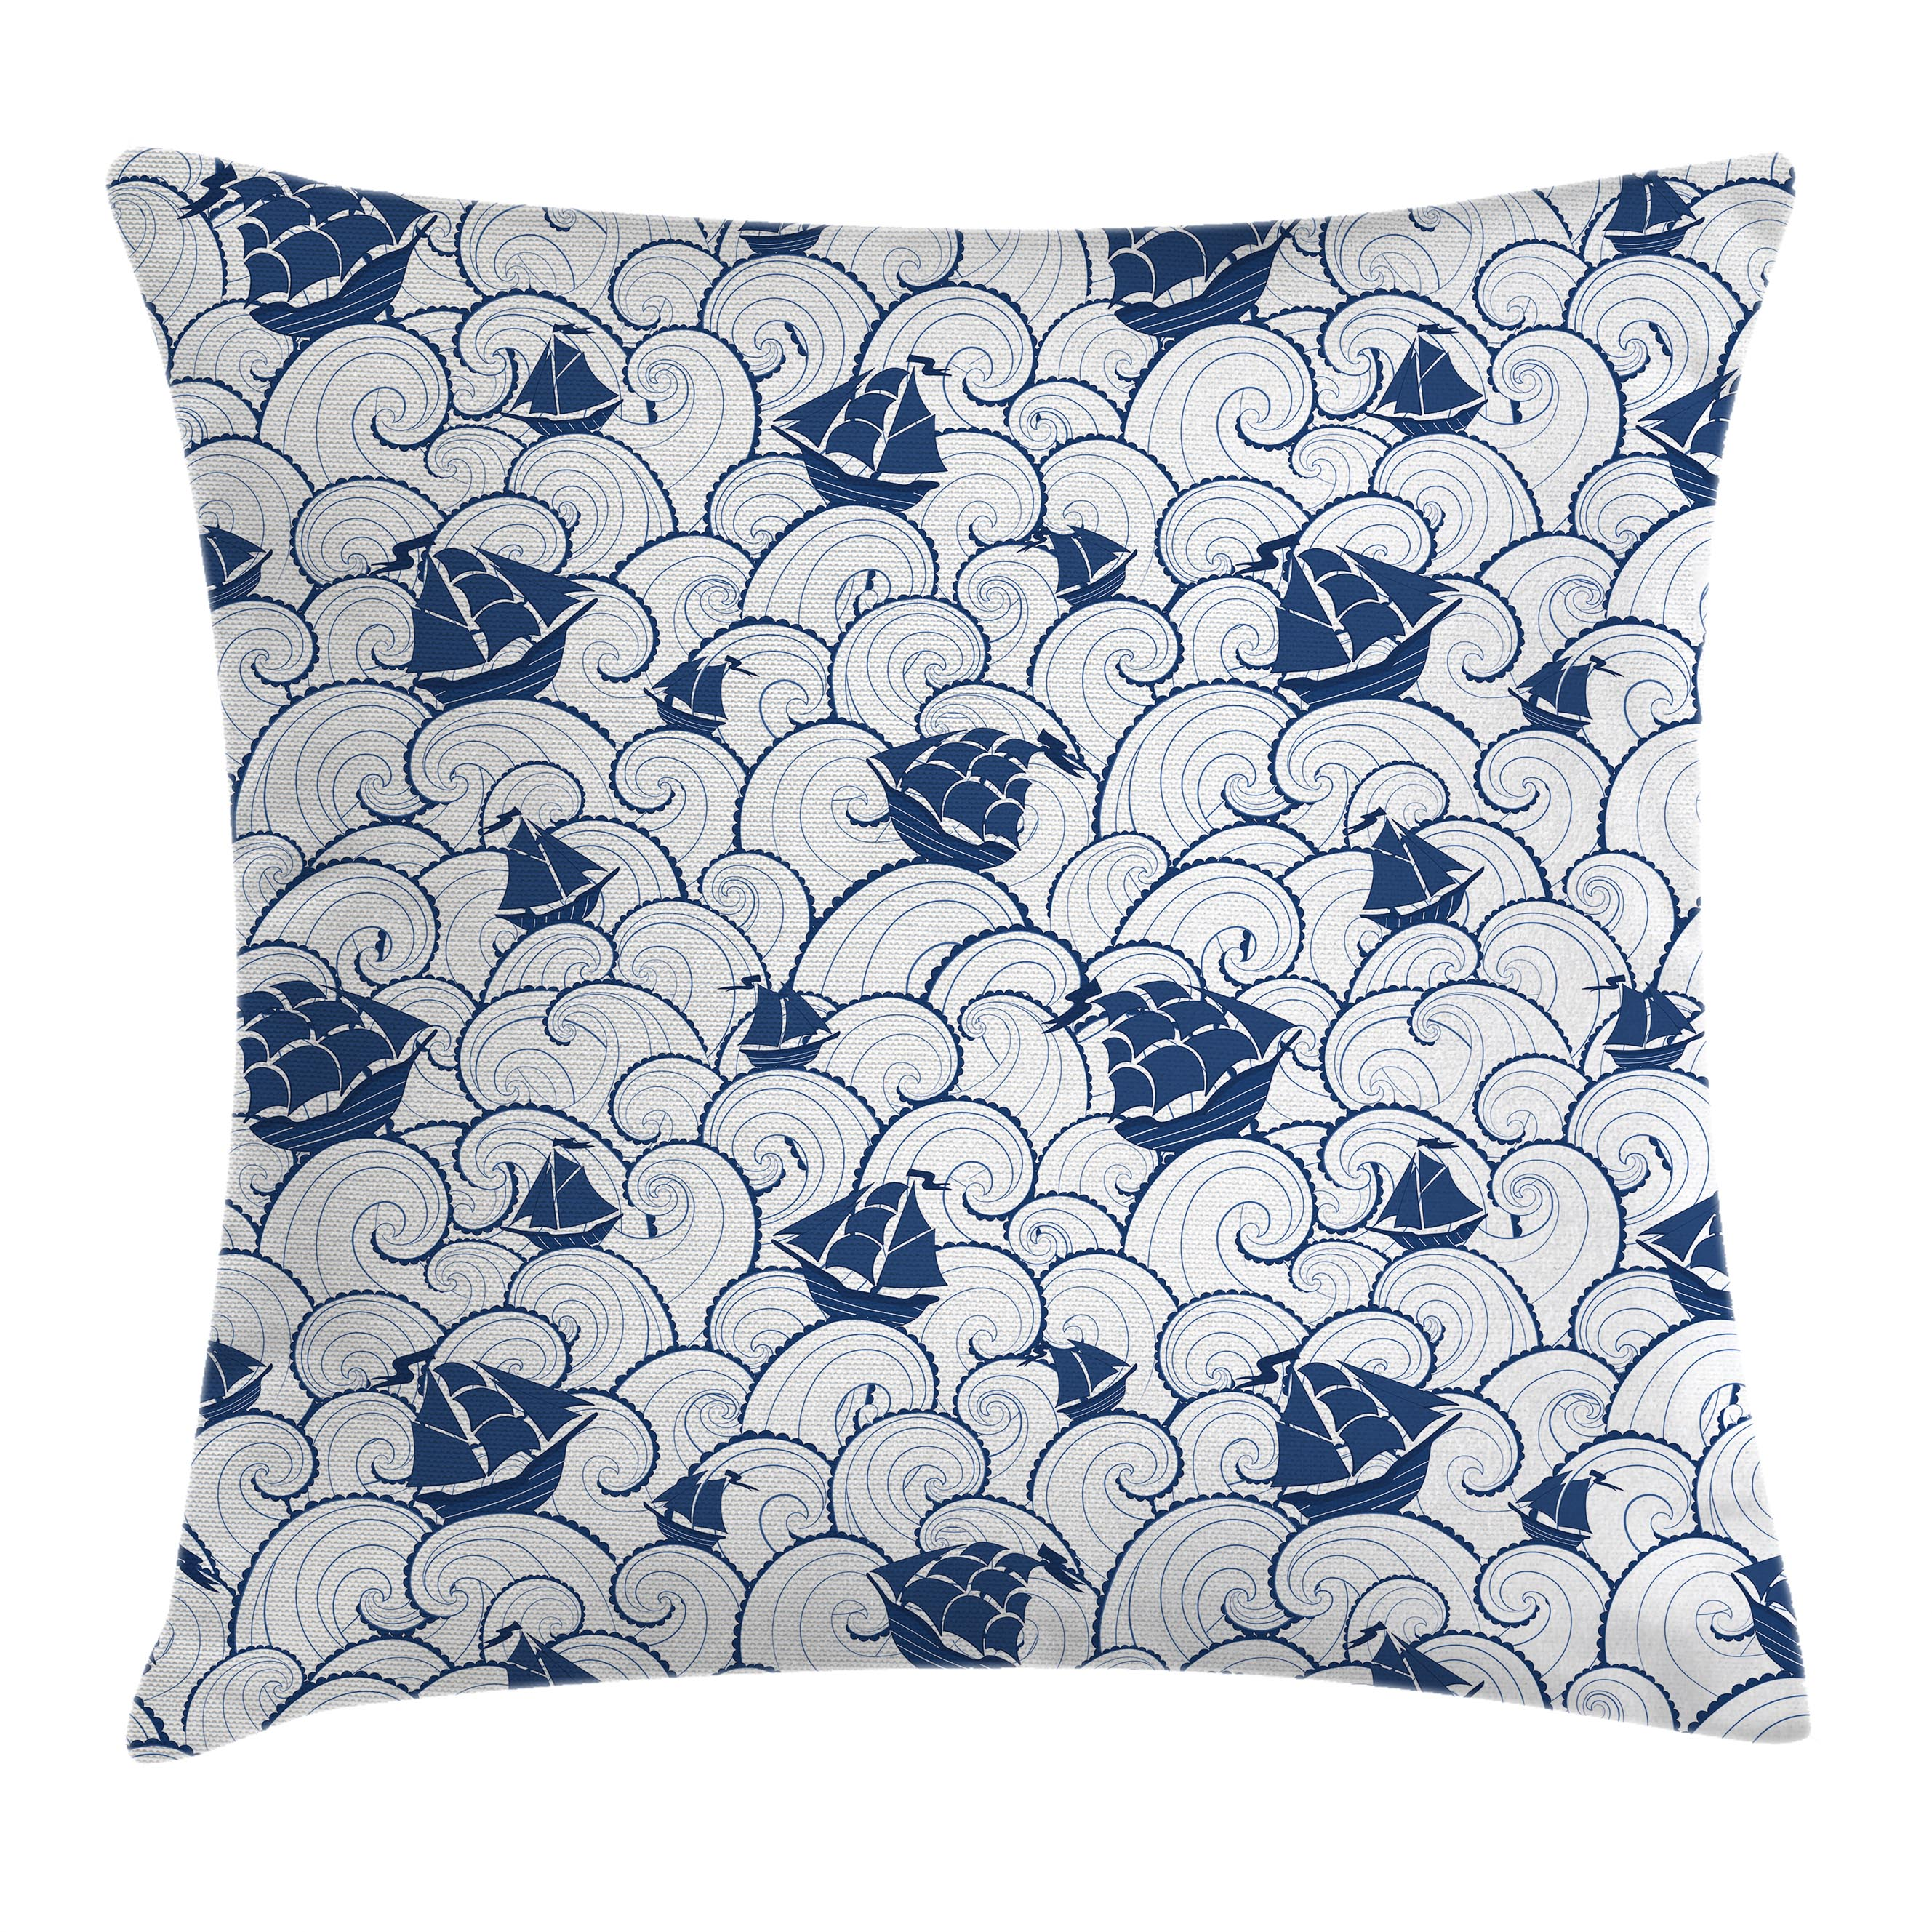 Dried Rose White Cute Baby Boy Pattern with Transportation Helicopter Air Balloon Car Ship Airplane Throw Pillow Cushion Cover 18 X 18 inches Decorative Square Accent Pillow Case